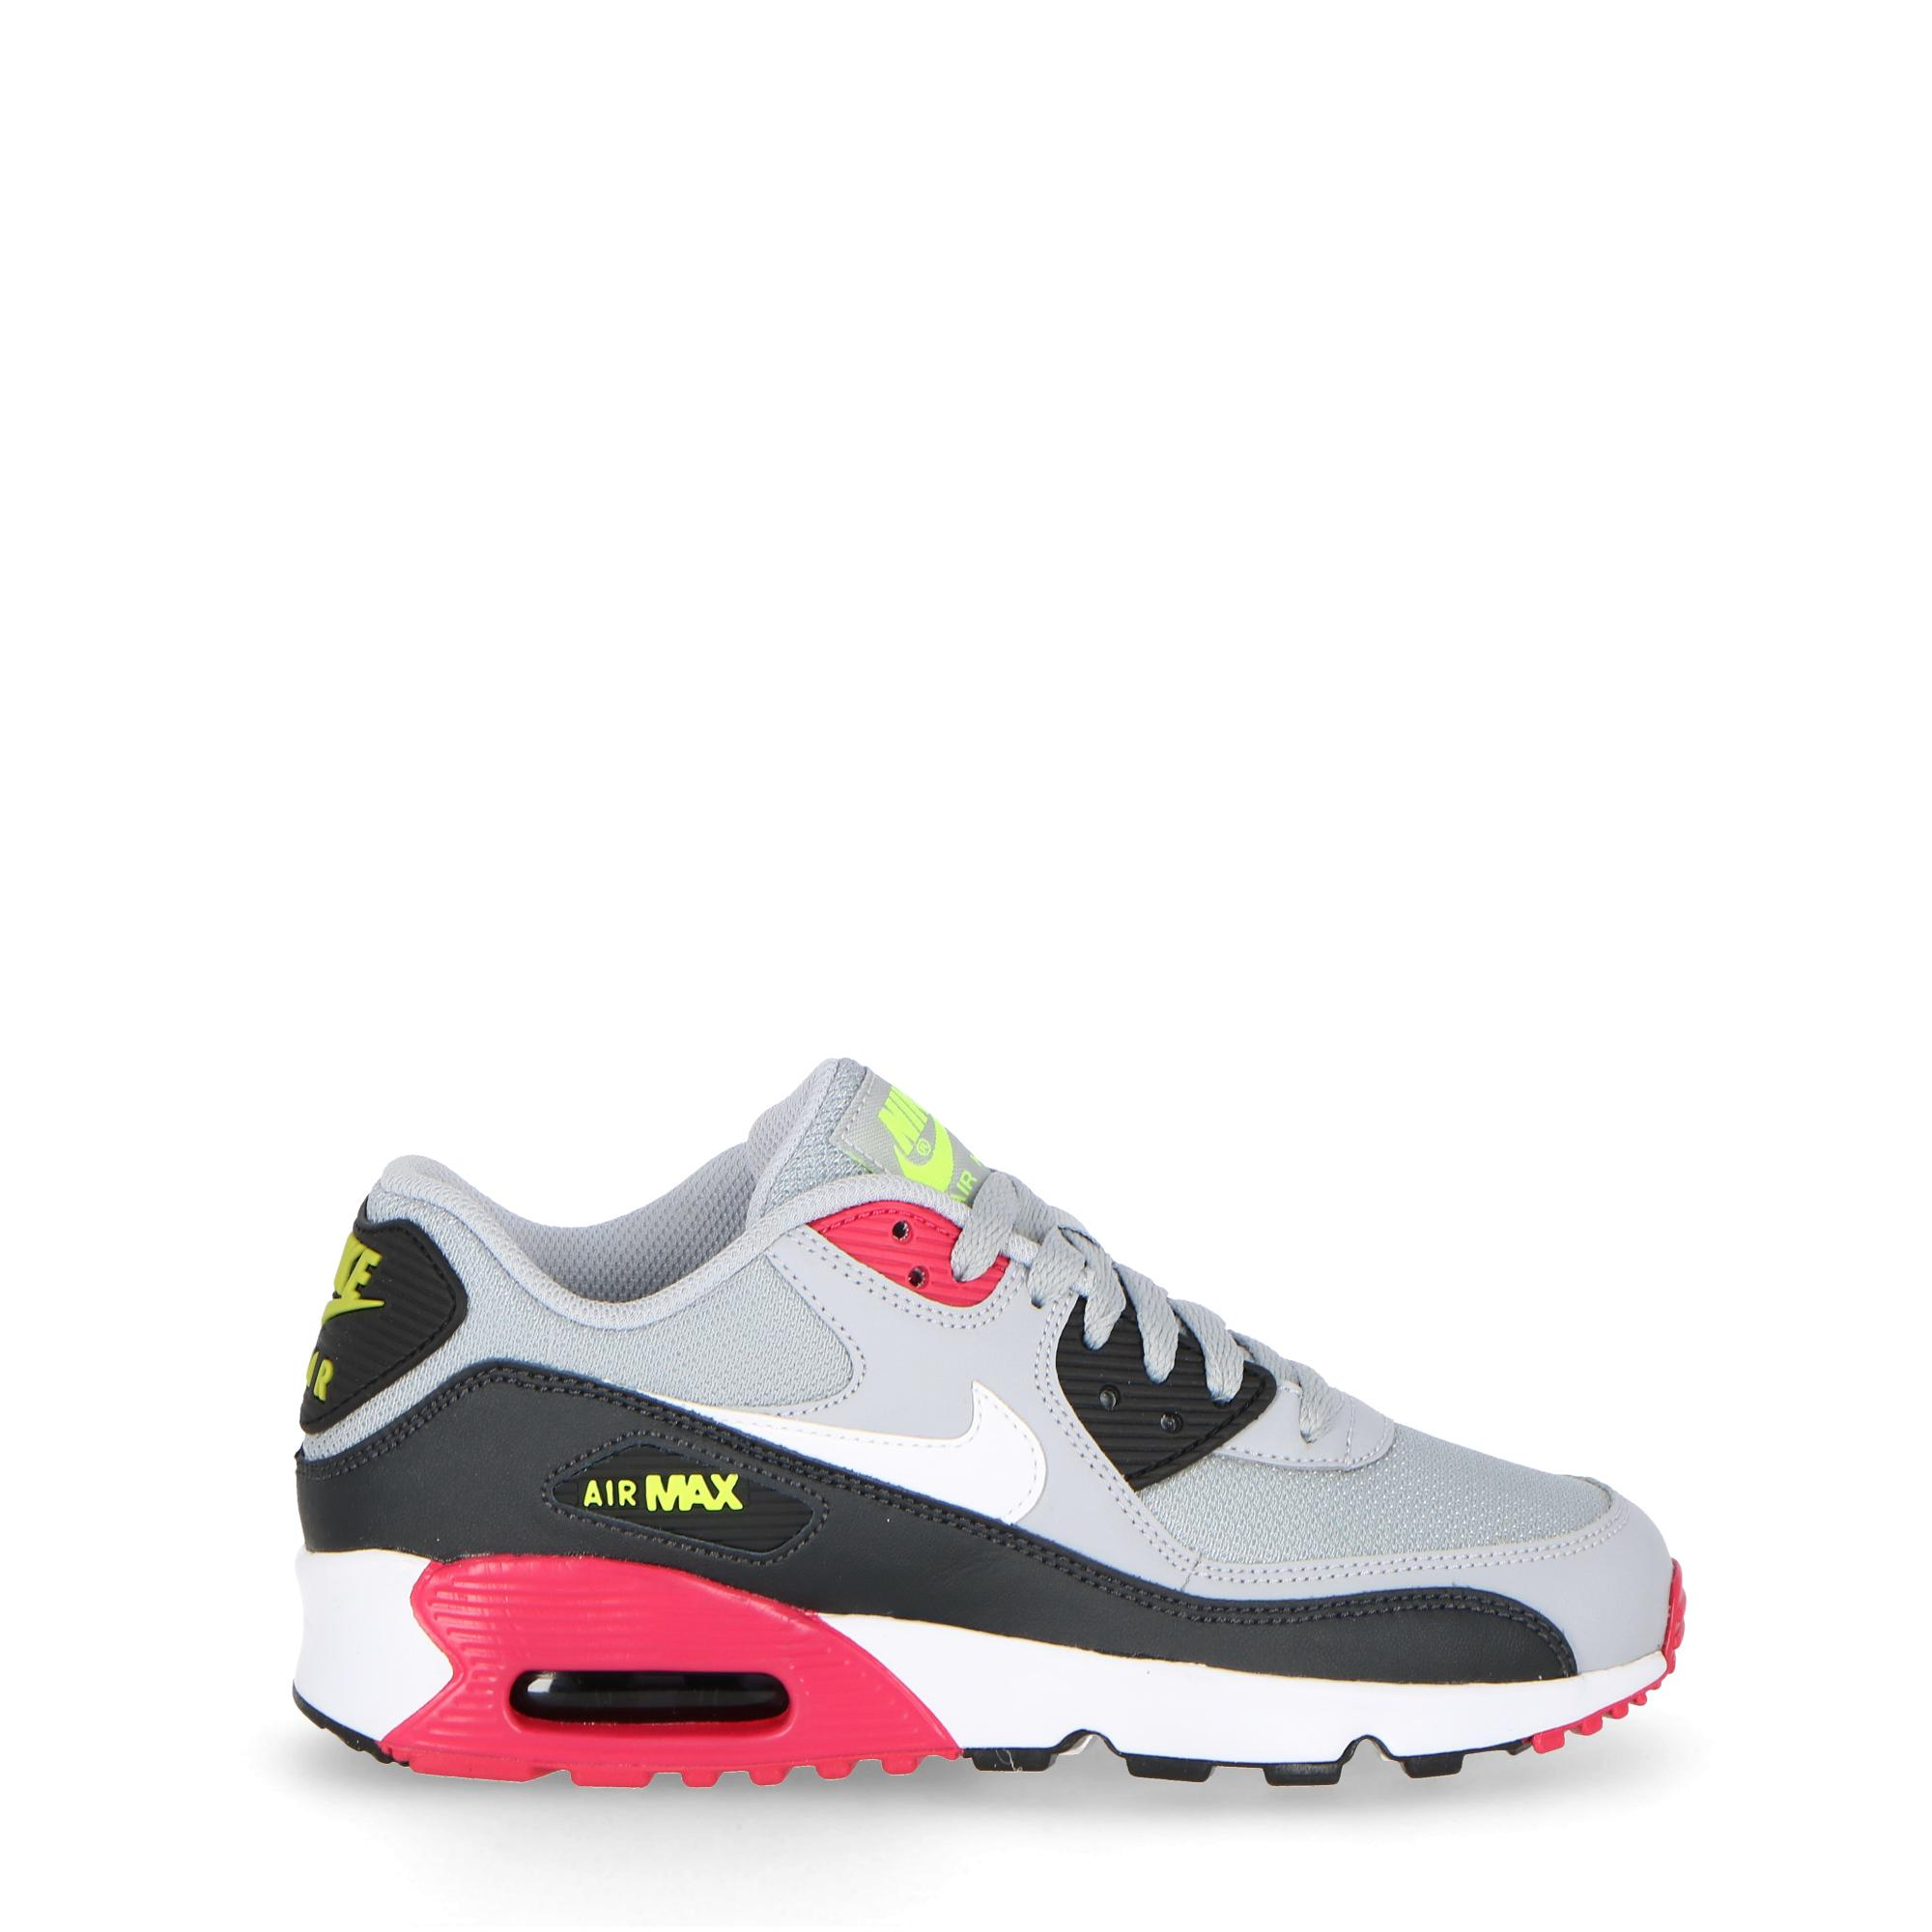 best website 2d4e1 abf40 Nike Air Max 90 Mesh (gs) - Kids Wolf grey white rush pink volt